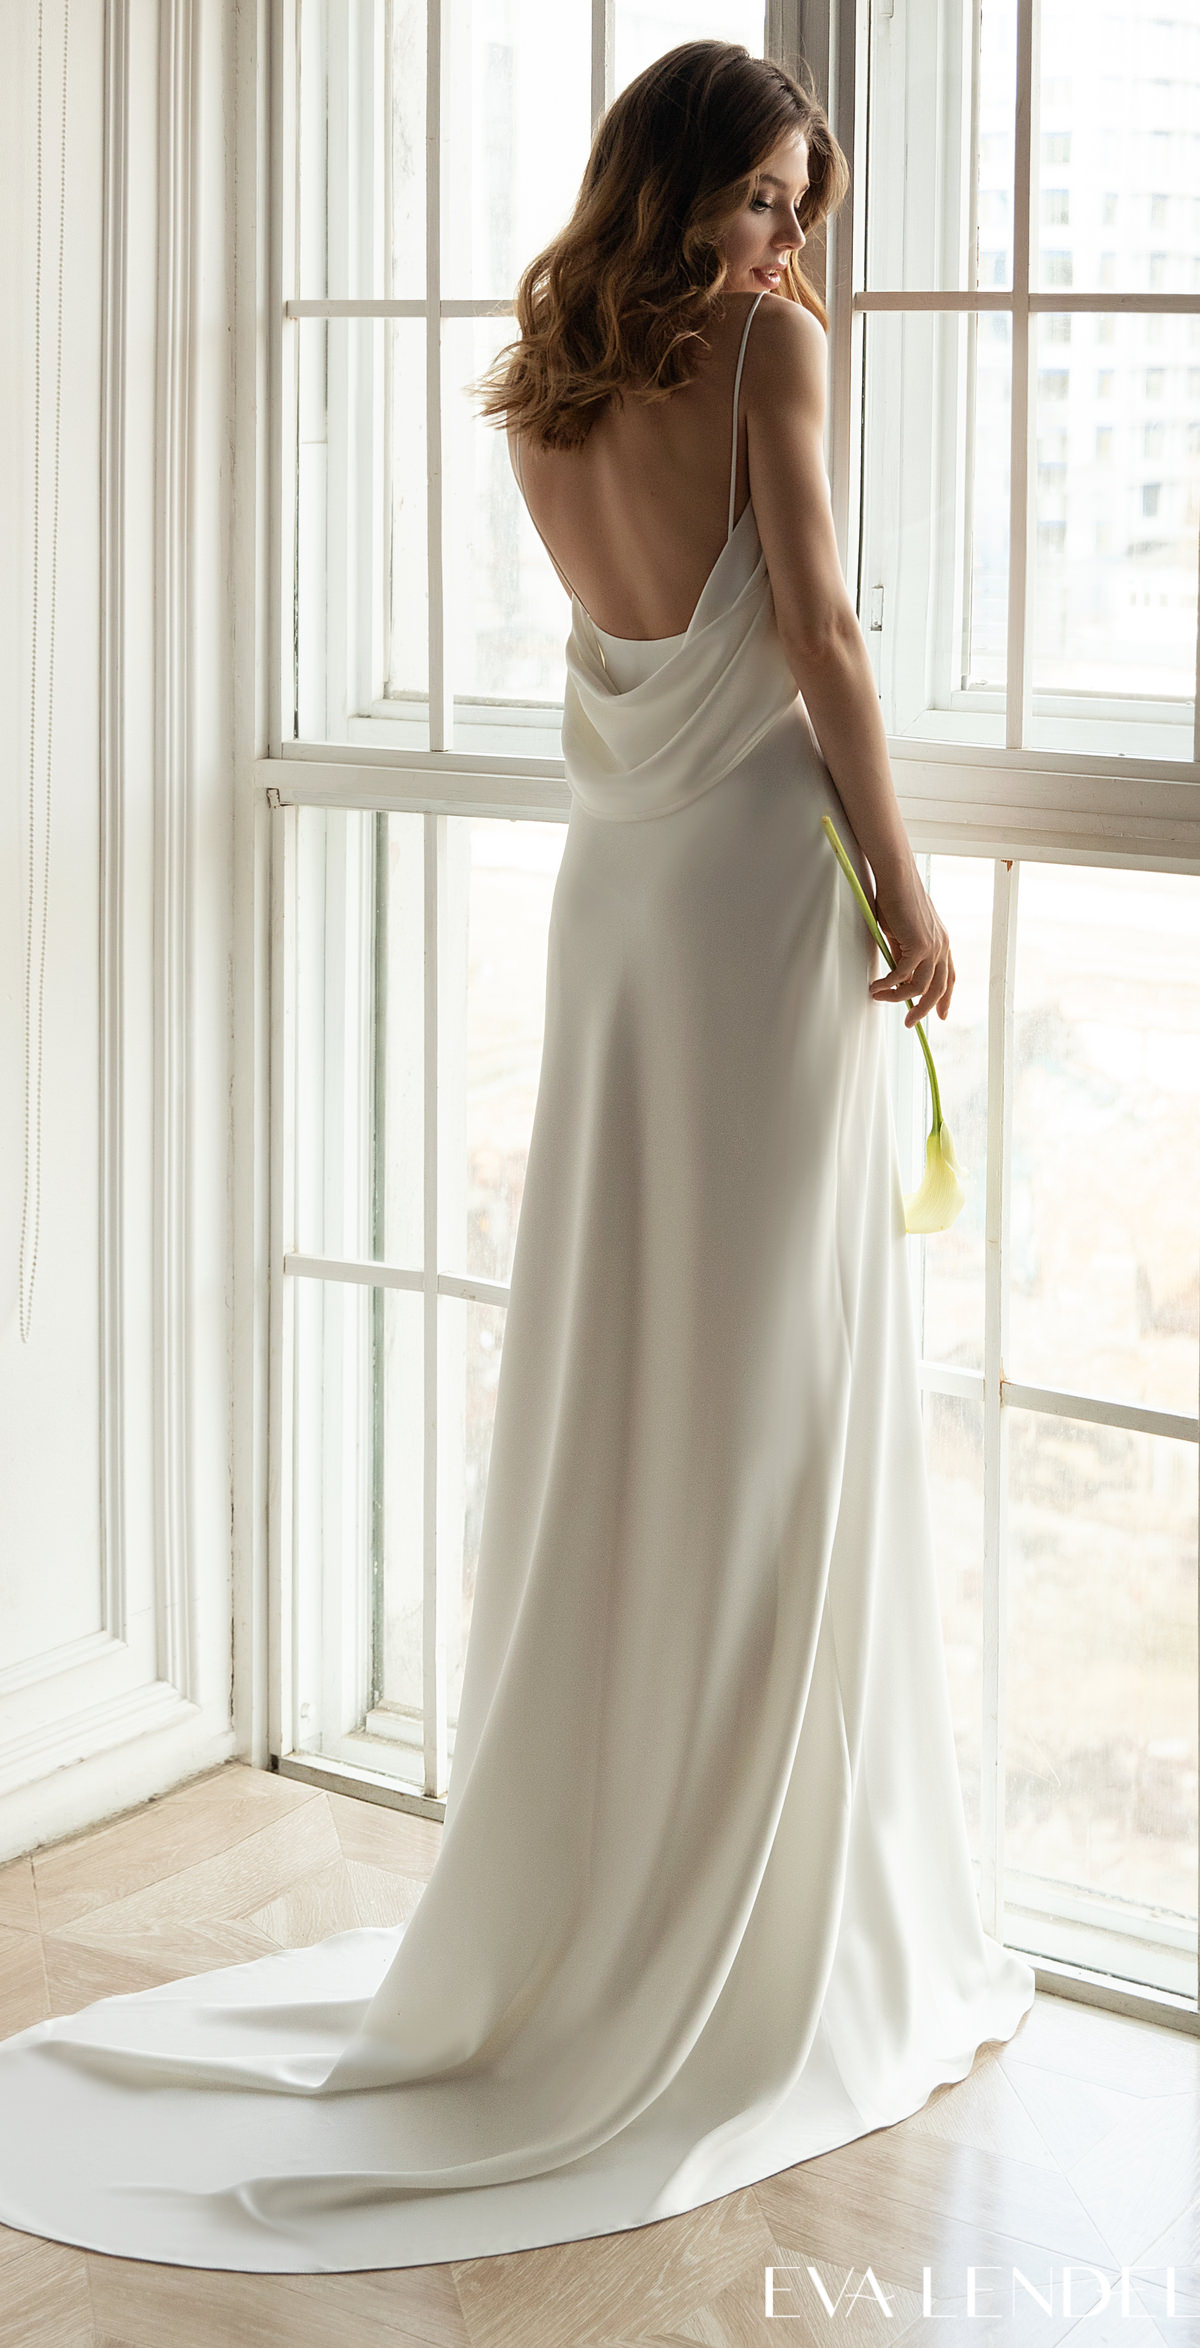 Eva Lendel Wedding Dresses 2021- Less is More Collection -Sia